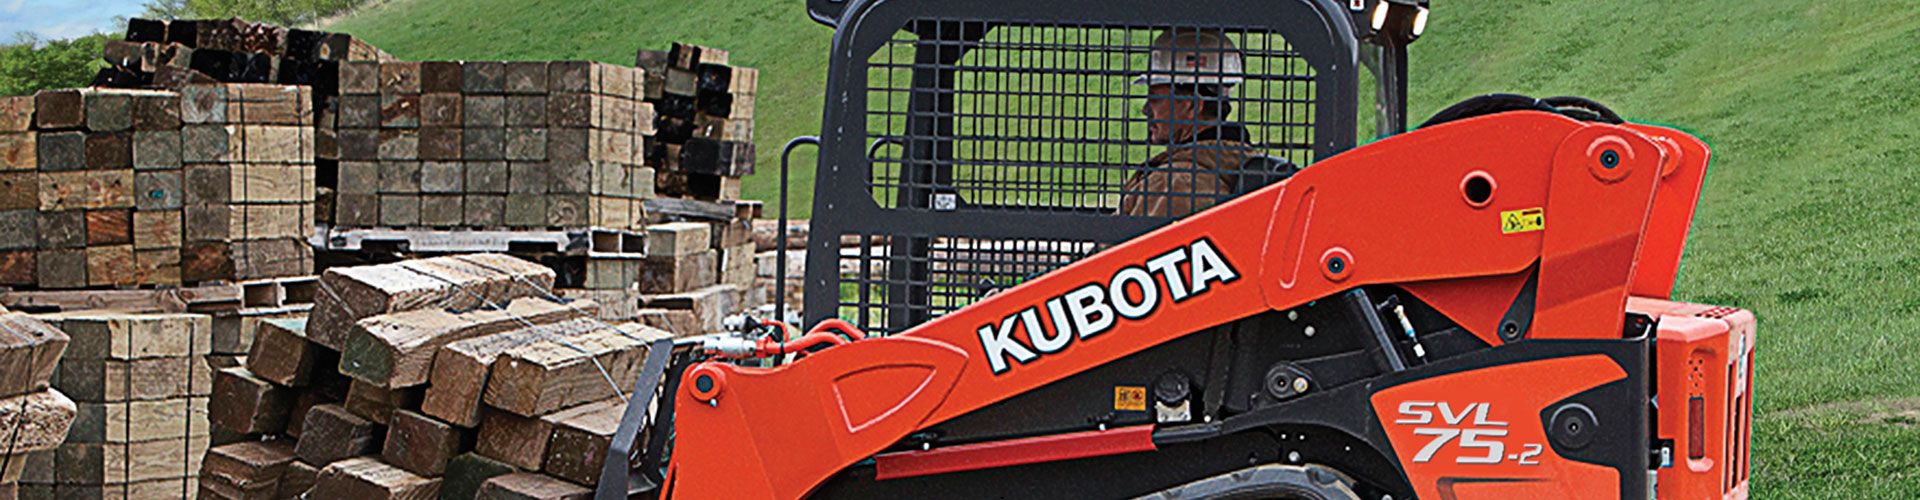 Rucker Equipment now stocks Kubota construction equipment